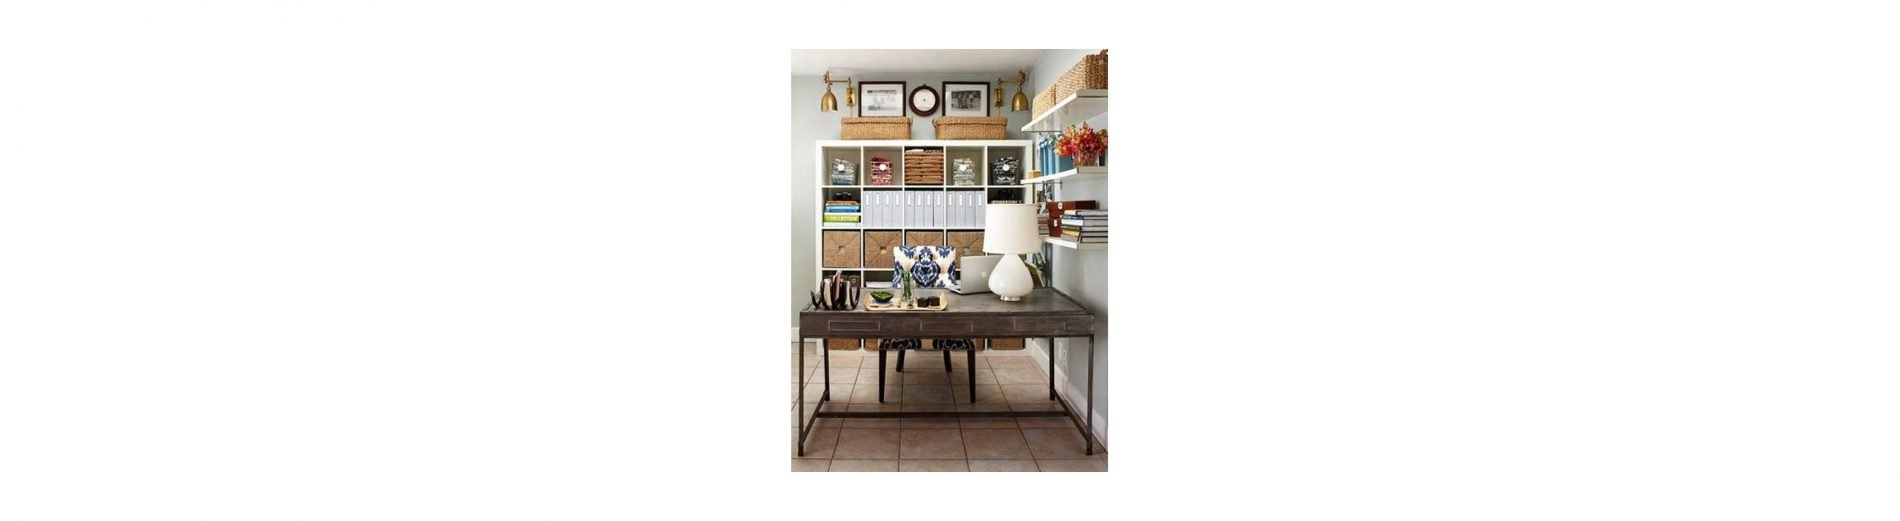 Coffee Table With Storage Baskets, A Great New Green Look